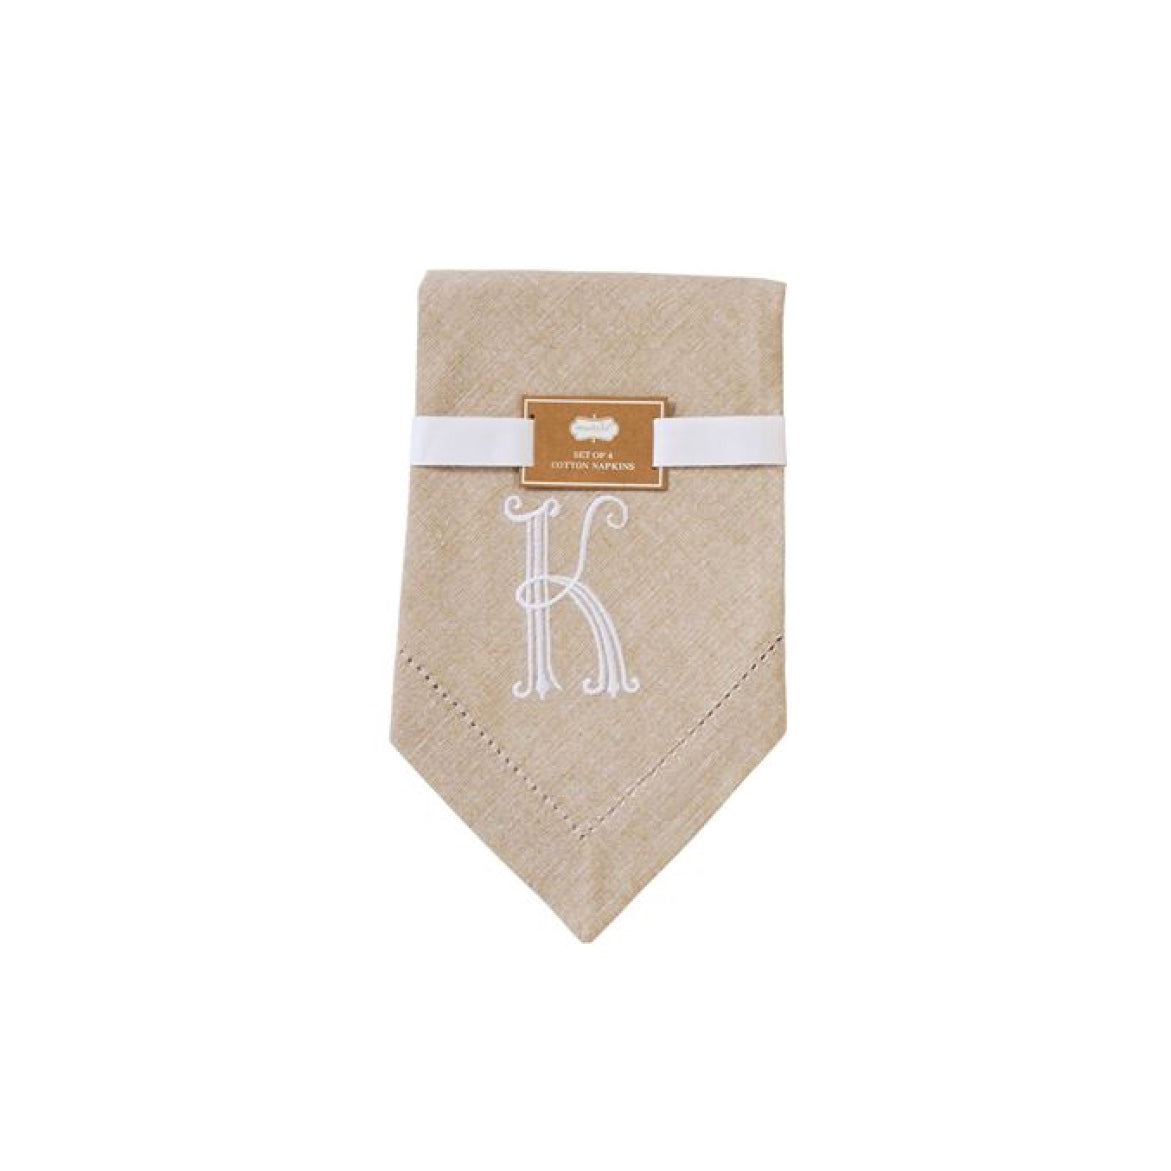 Monogrammed Napkin Set - Initial K, MP-Mud Pie, Putti Fine Furnishings